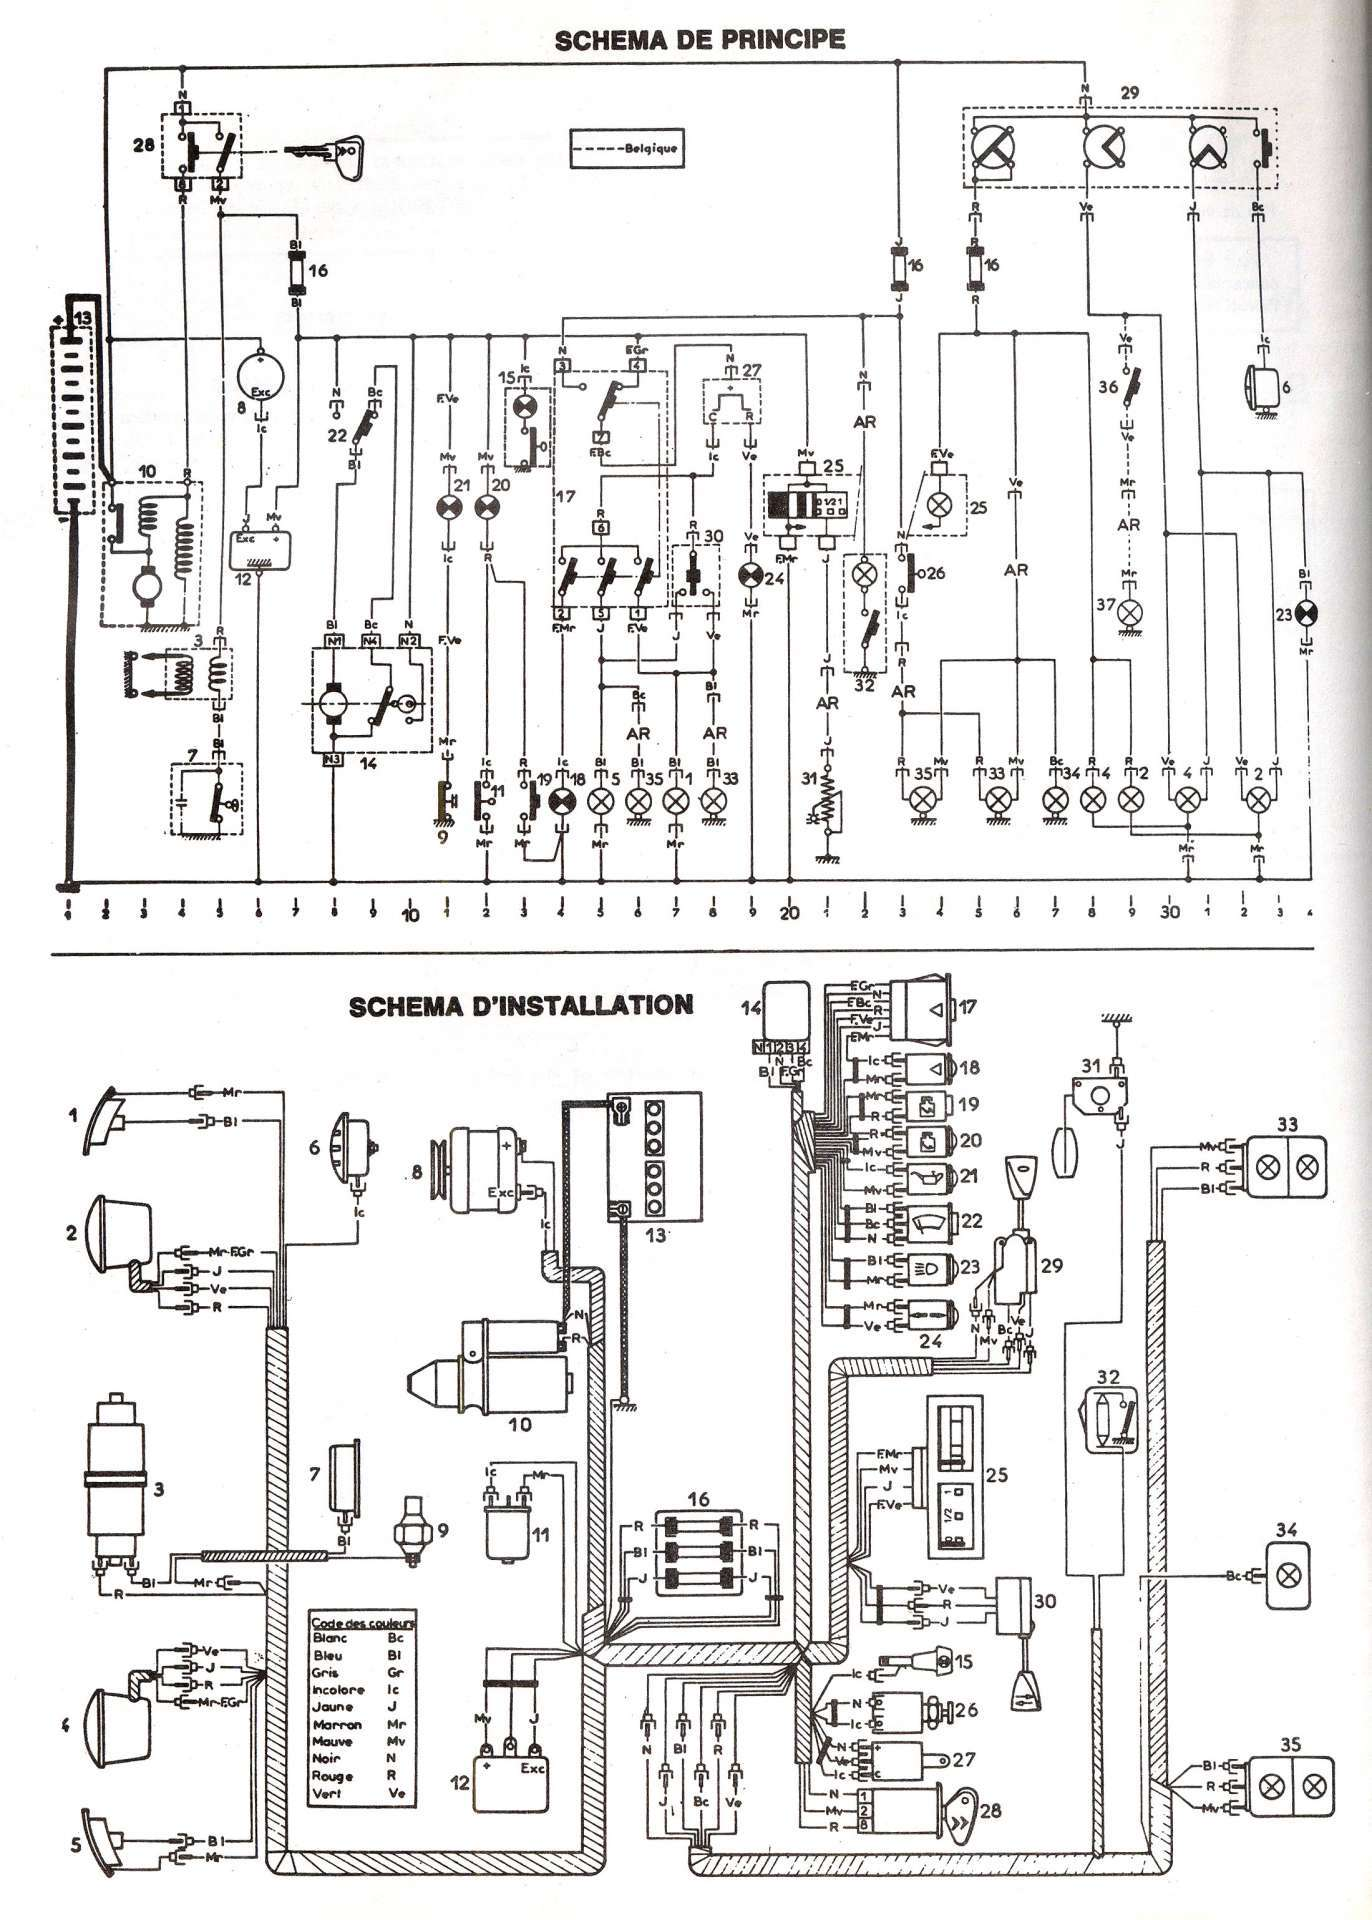 Sensational Circuit Diagram Of Nokia C2 01 Online Wiring Diagram Wiring 101 Olytiaxxcnl